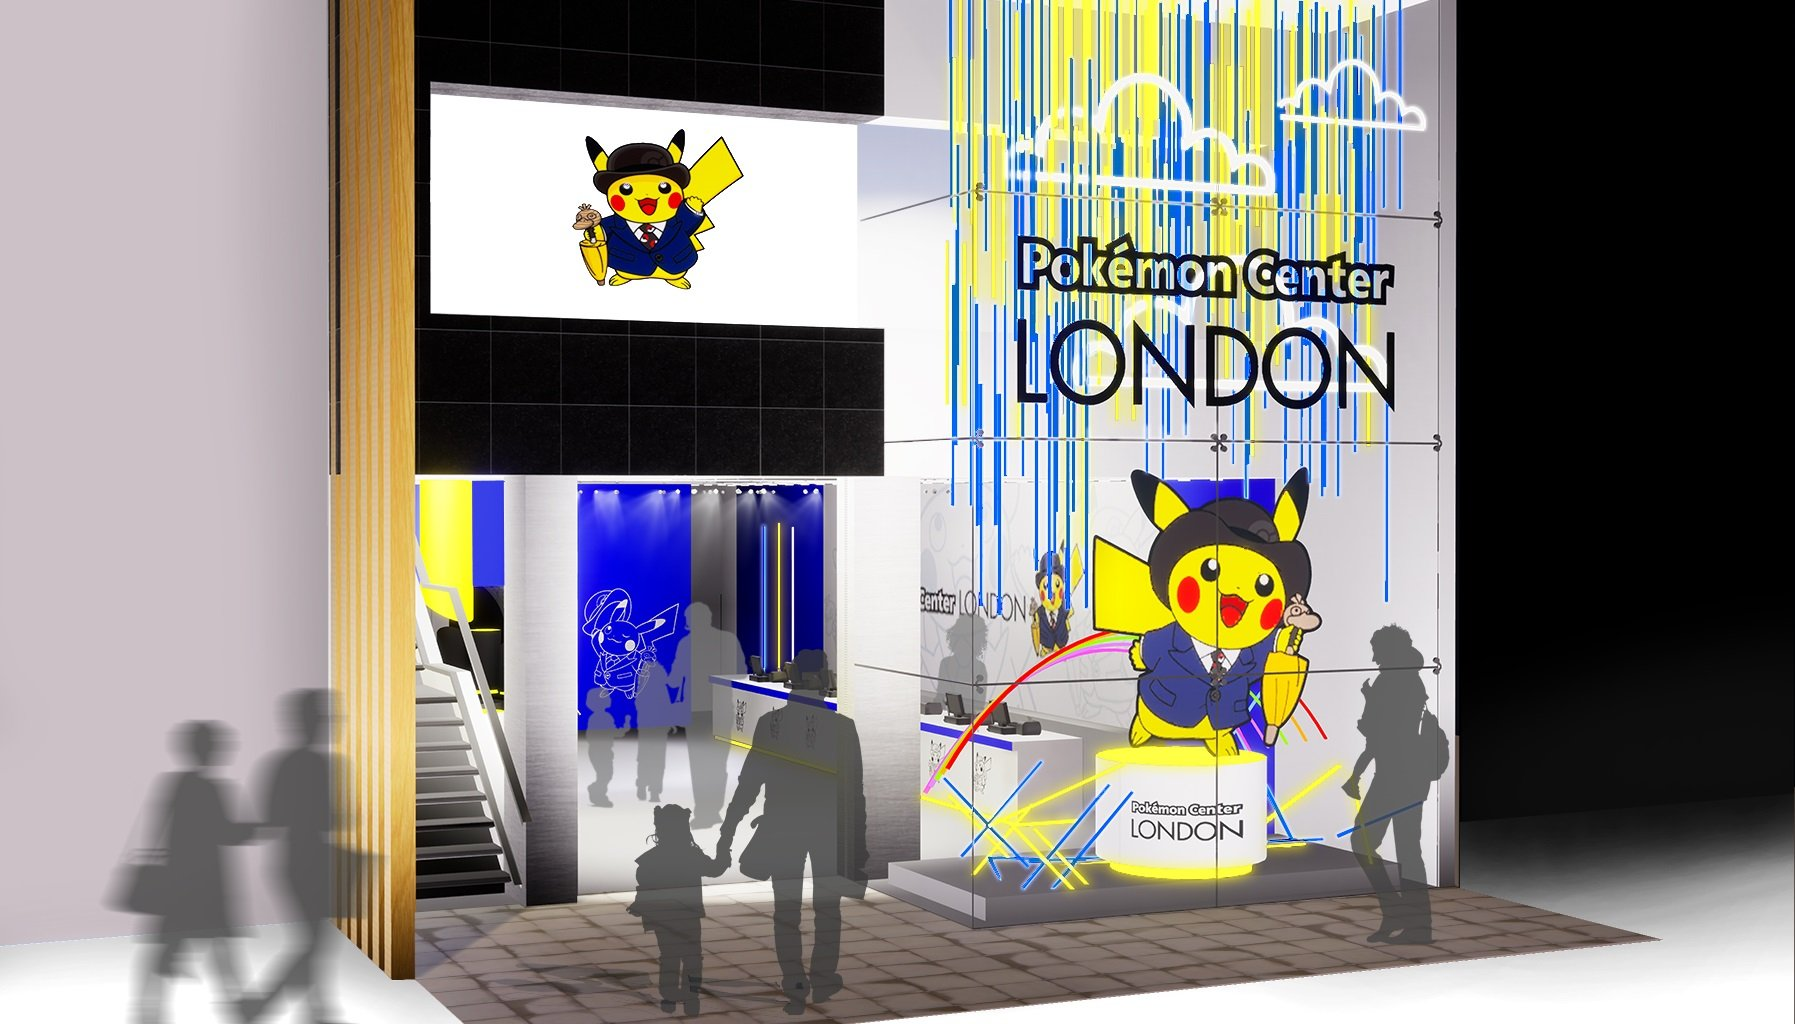 London getting temporary Pokemon Center